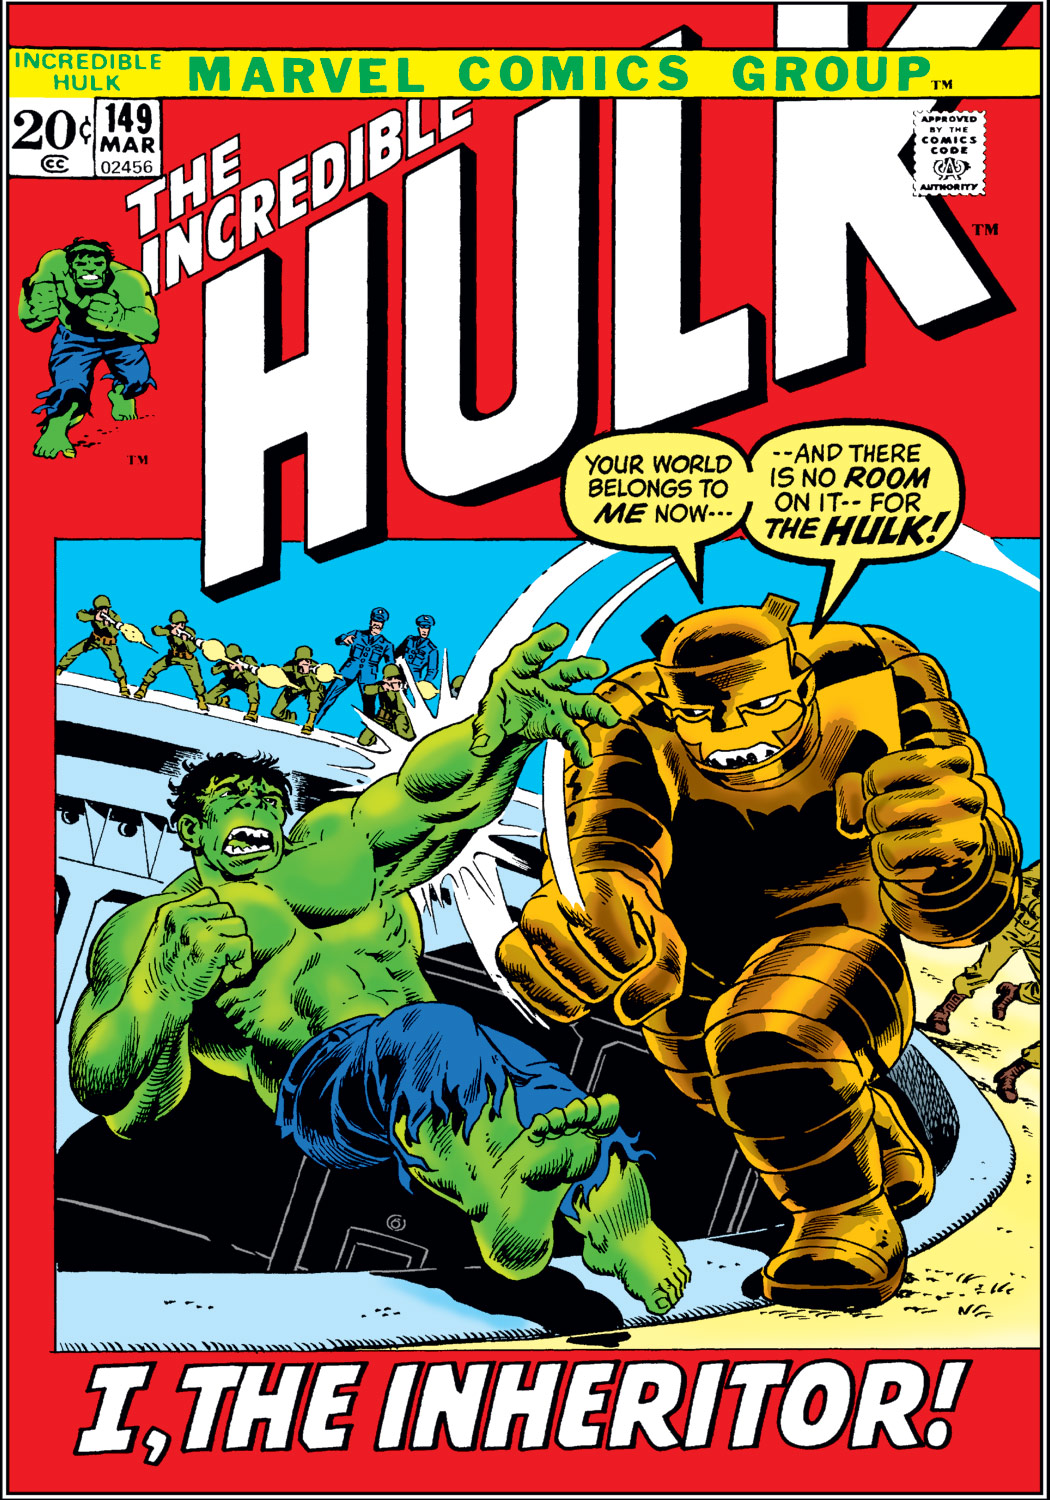 Incredible Hulk (1962) #149